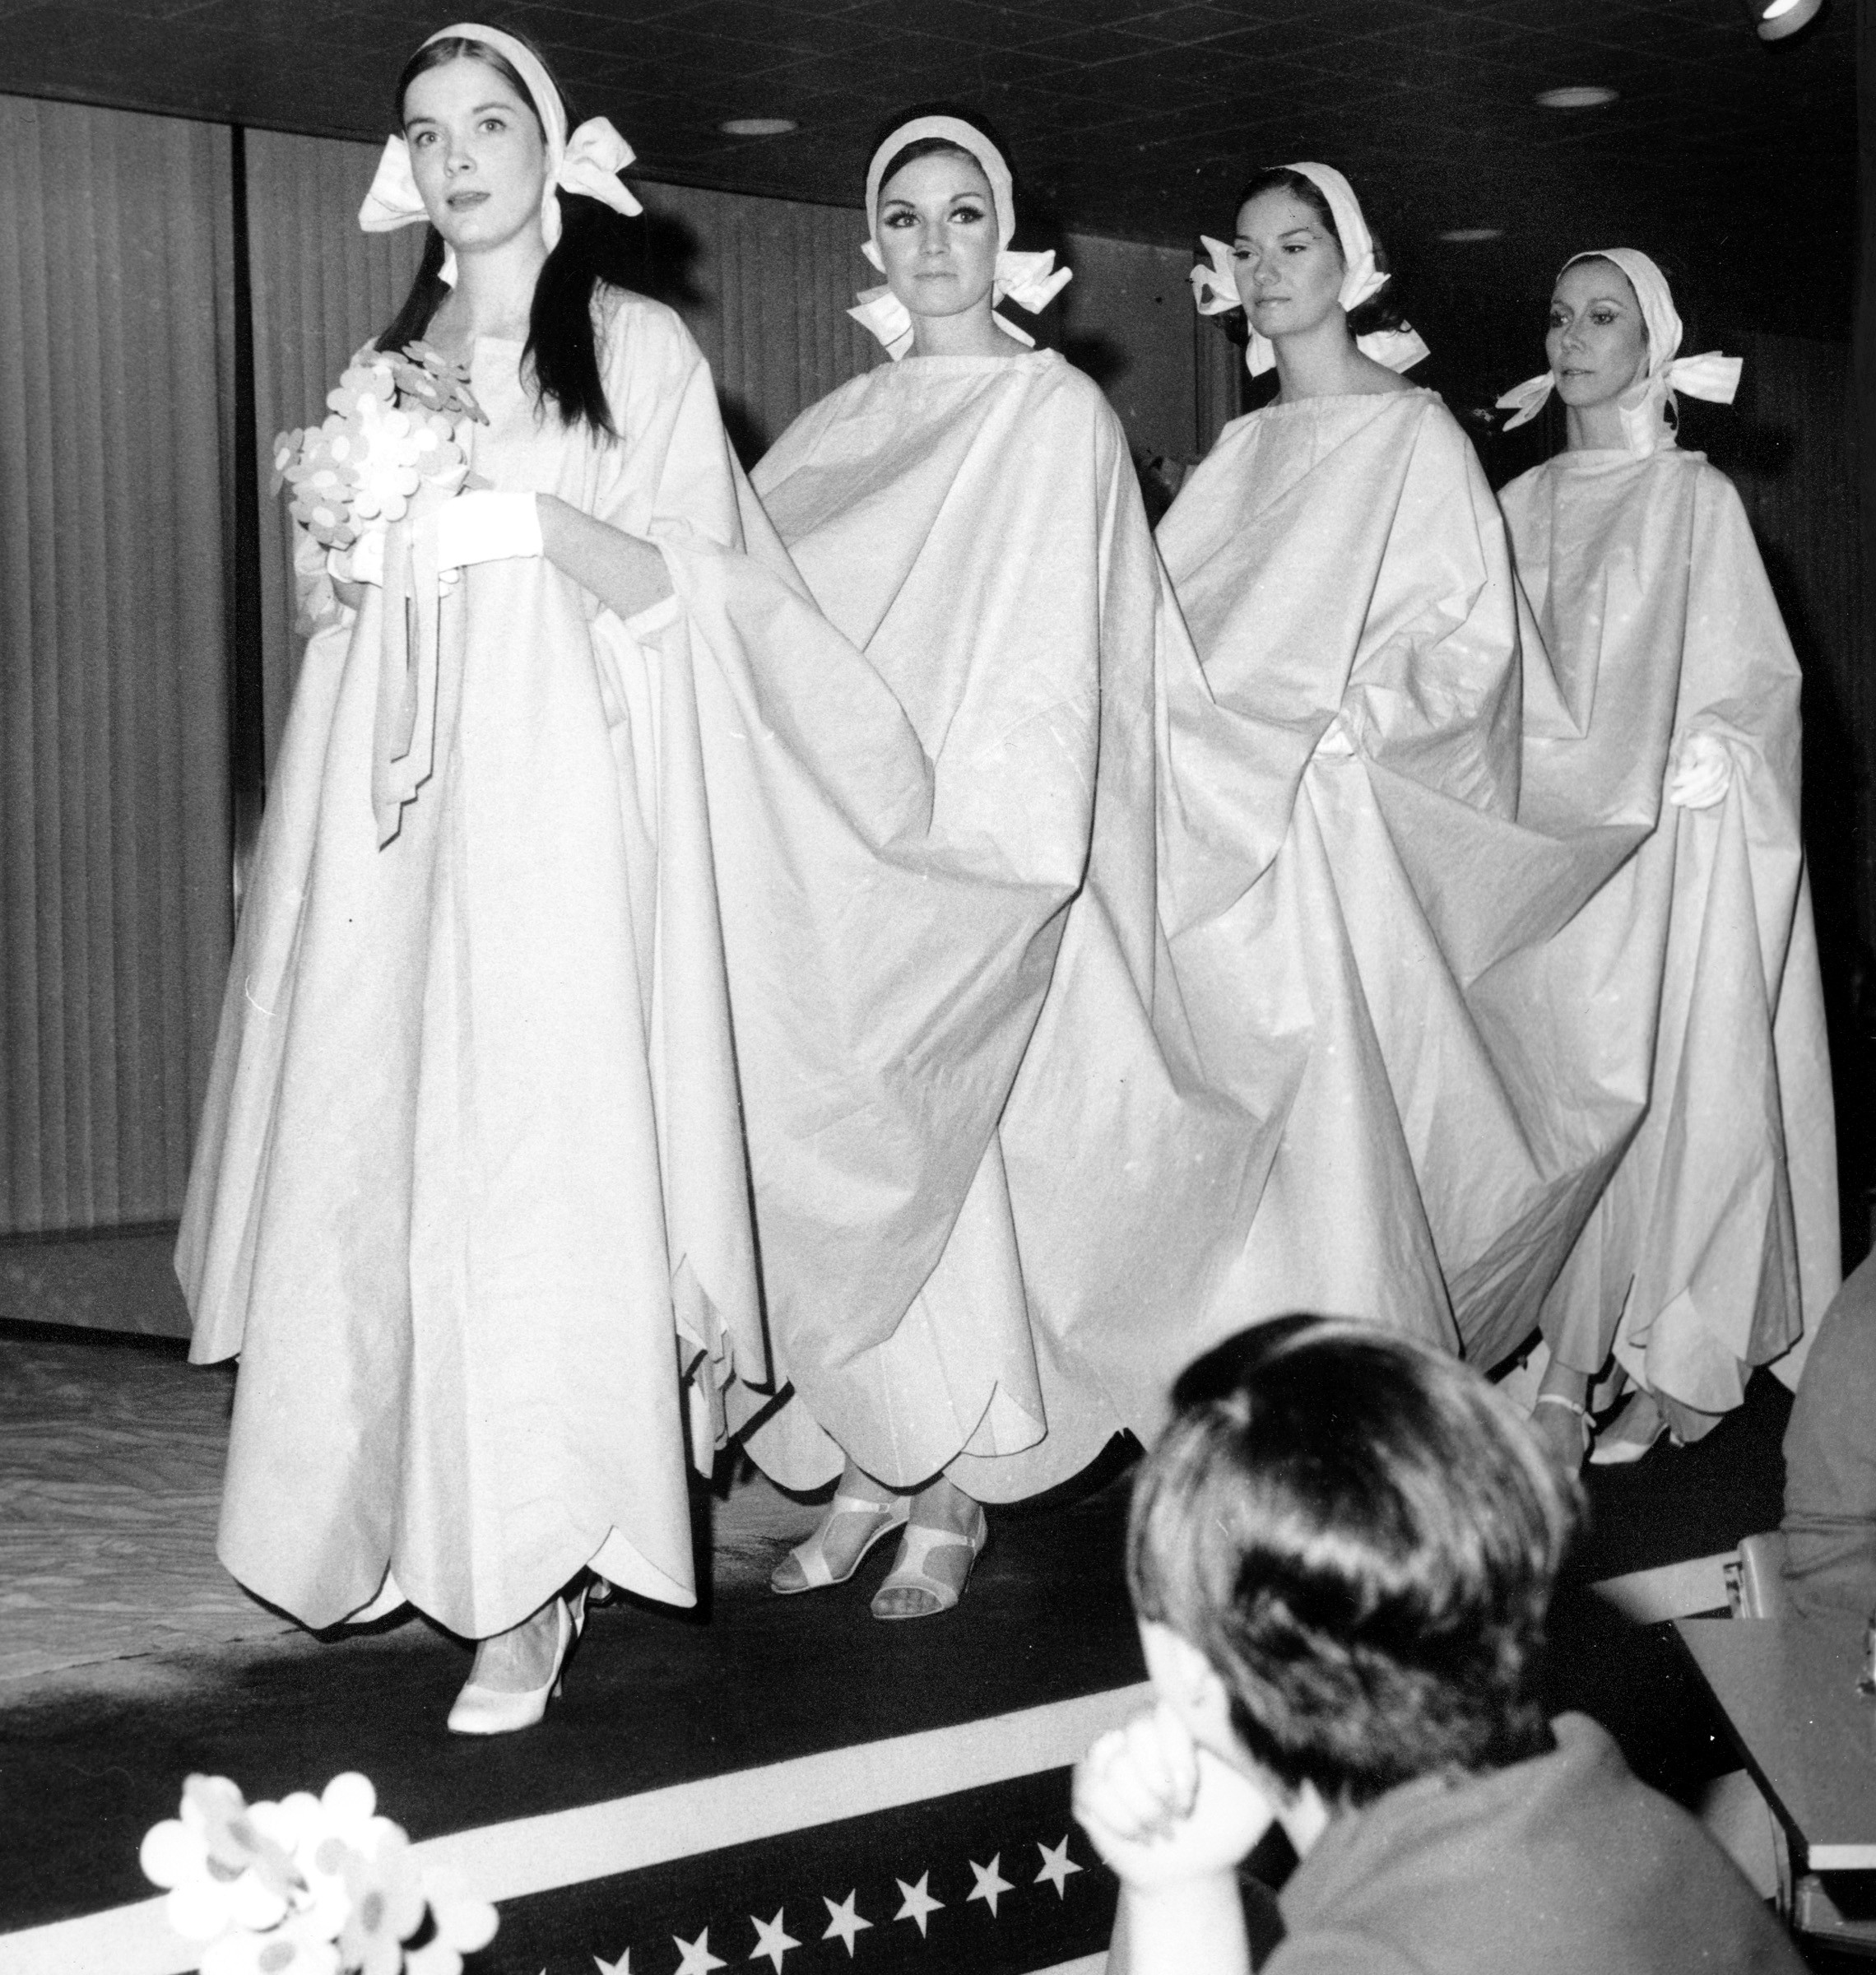 60ies Wedding Dress.This Wild Paper Clothing Trend Of The 1960s Was The Early